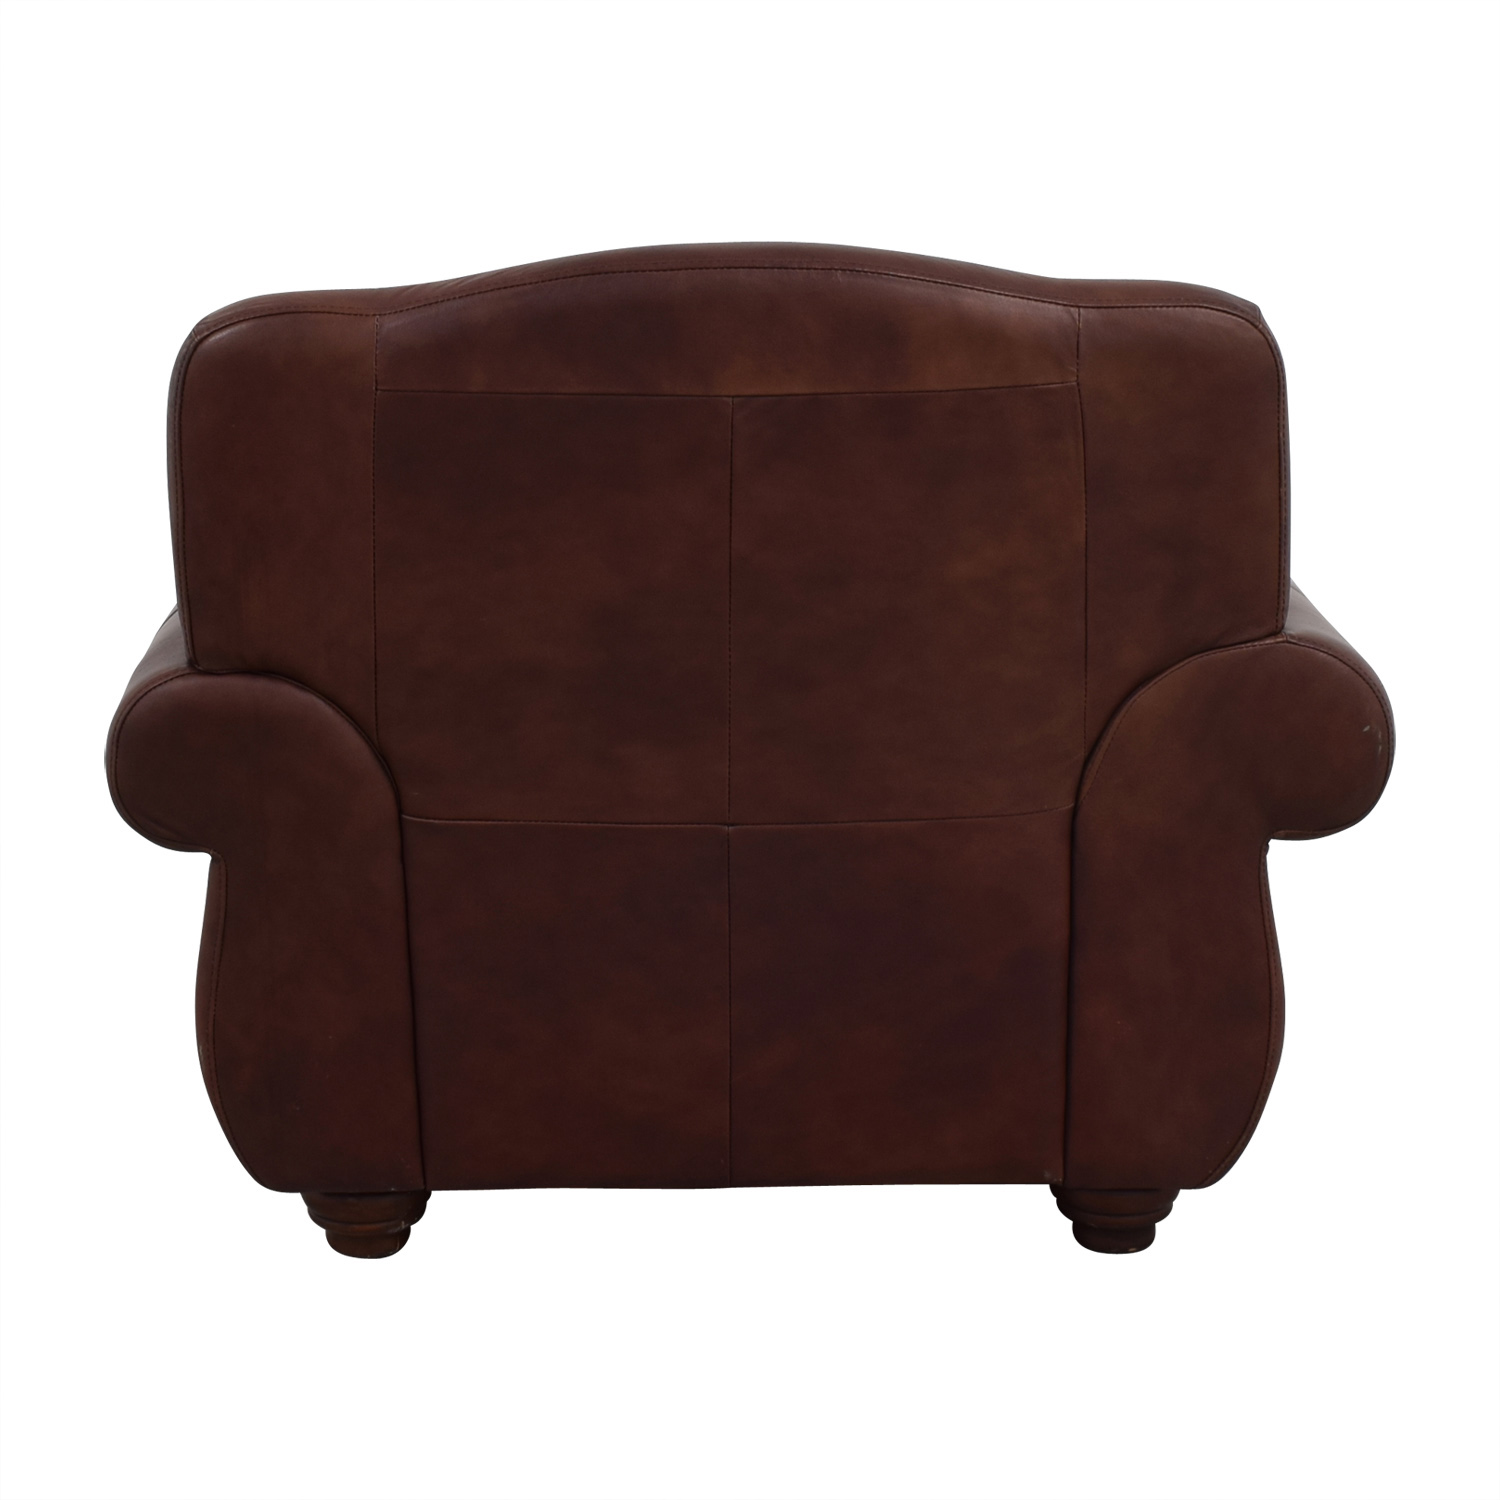 Rooms To Go Brown Leather Accent Chair